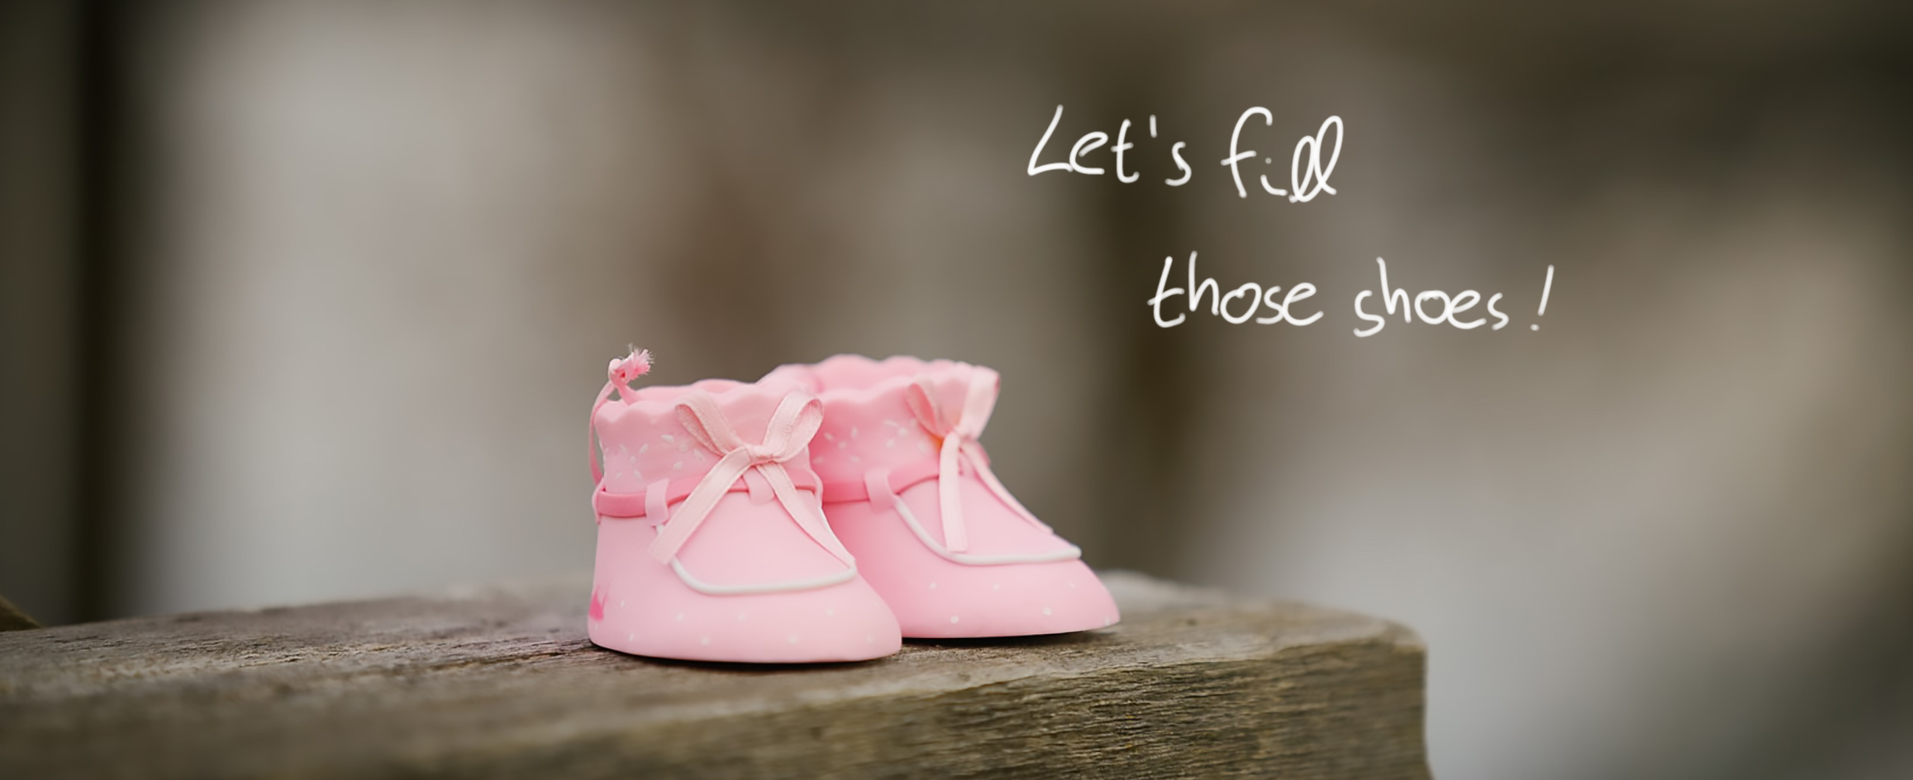 pink infant shoes gonimon fertility